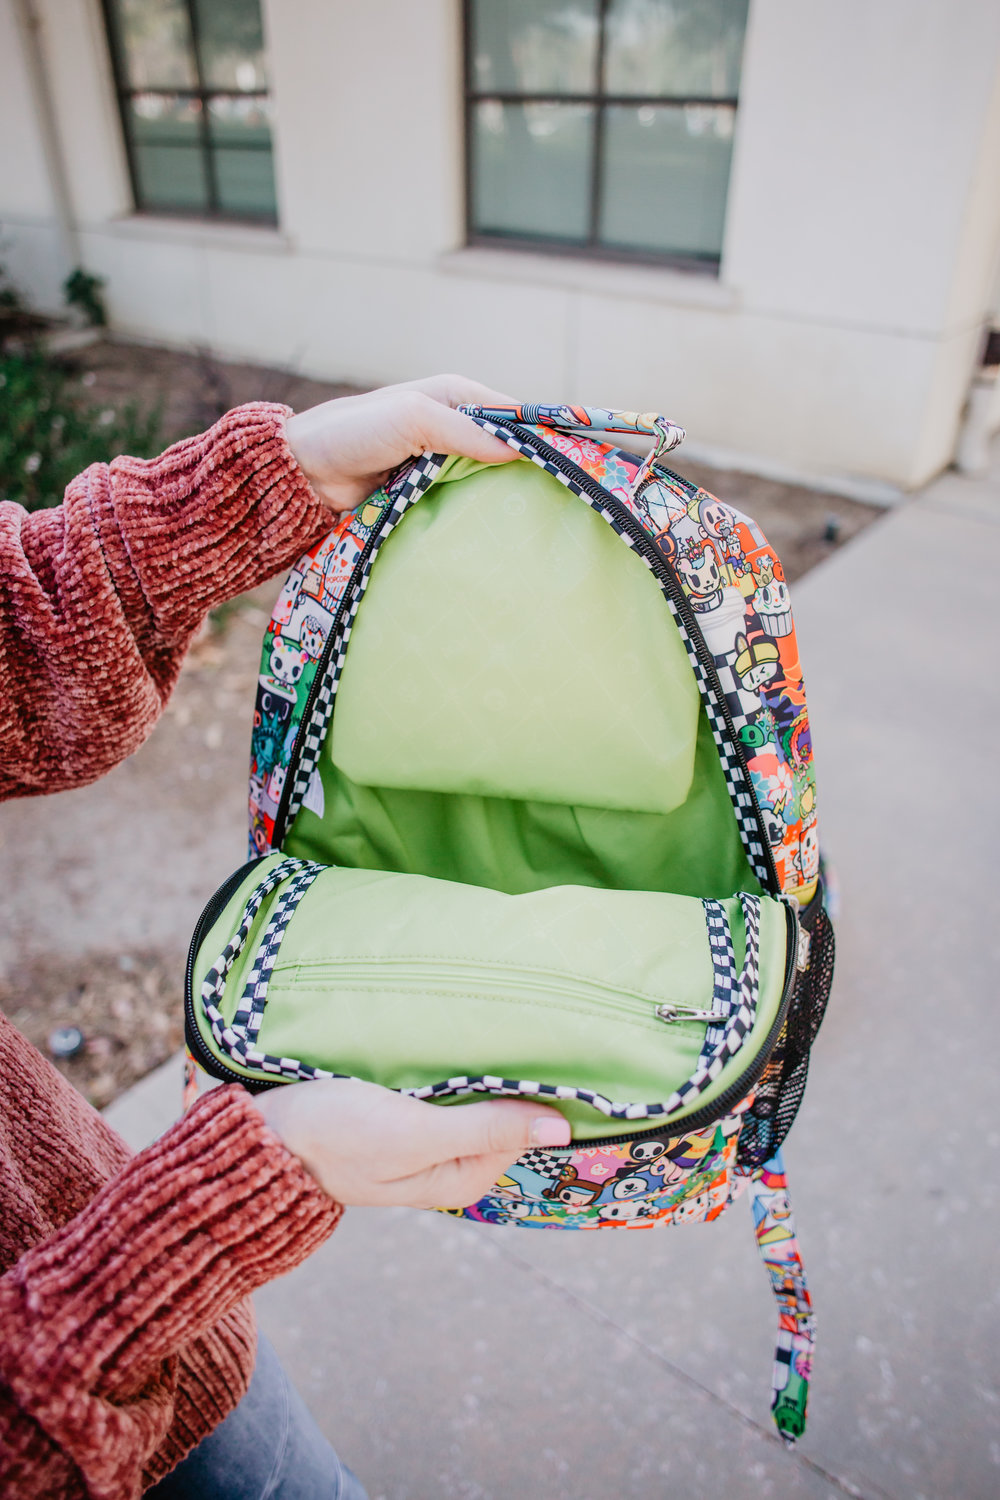 Ju-Ju-Be Sushi Cars Mini Be - Cute Diaper Bags -- Mommy Blogger-Vlogger - The Overwhelmed Mommy